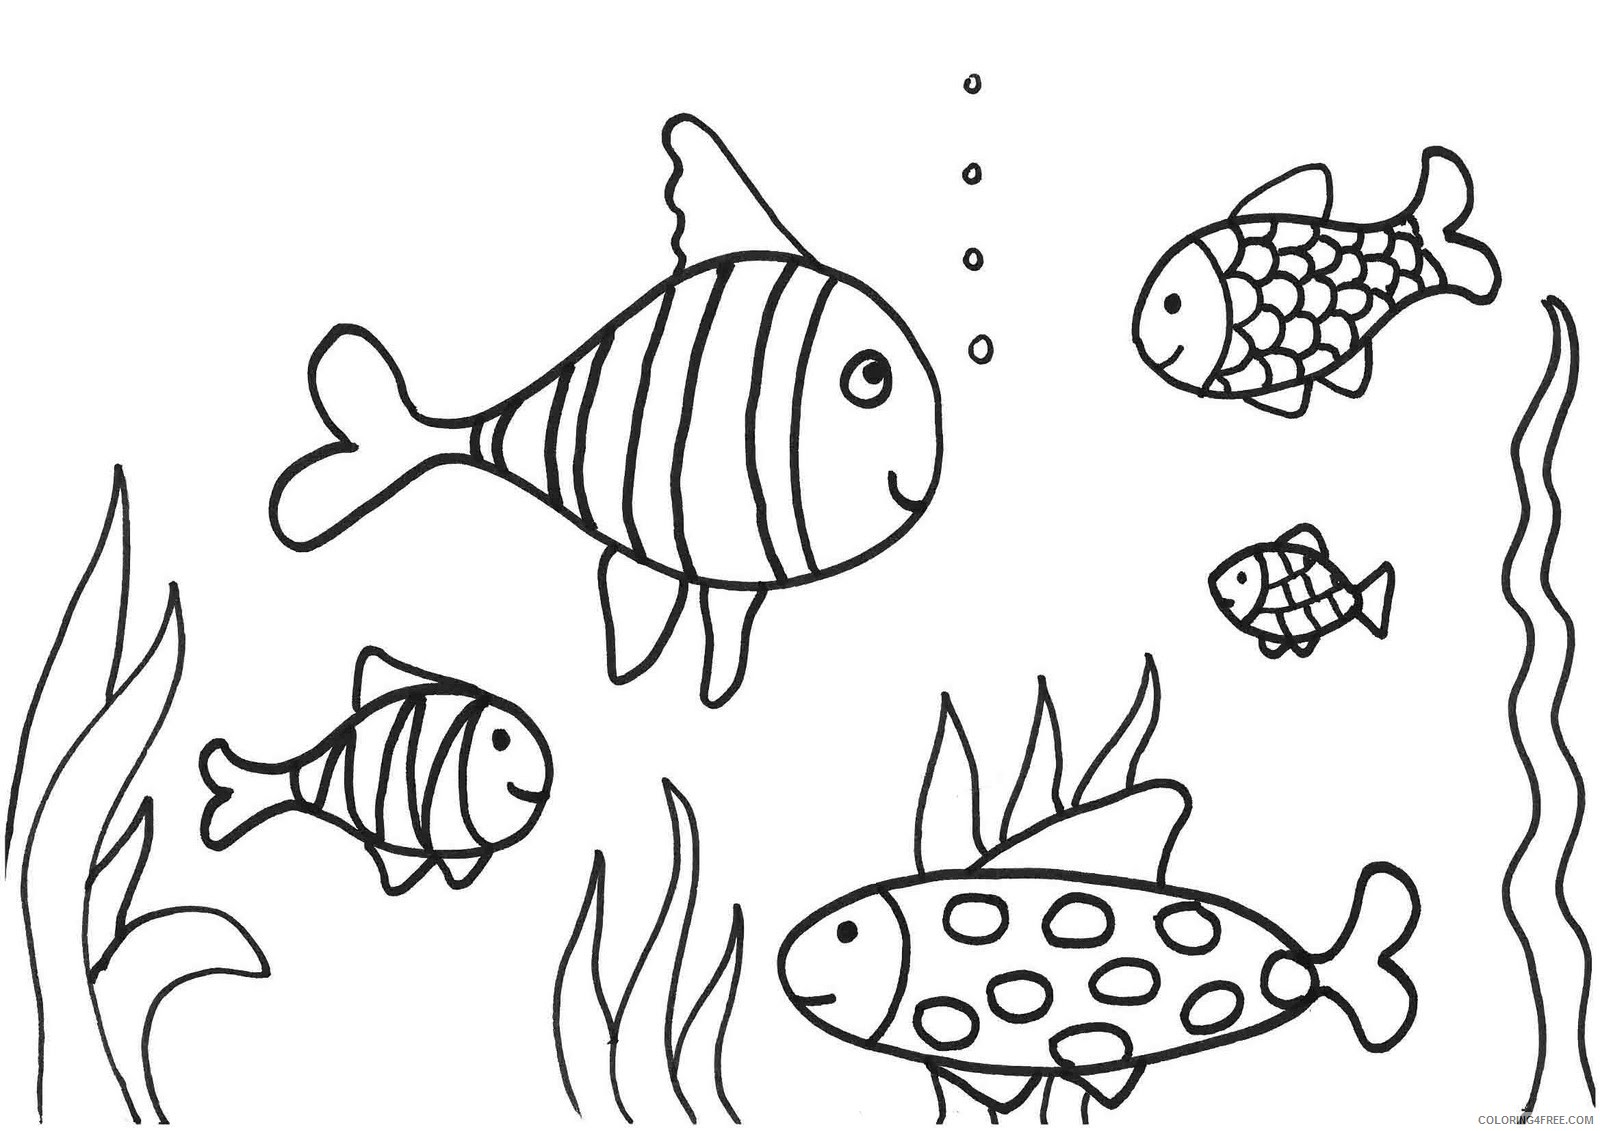 Fish Coloring Pages Underwater Coloring4free Coloring4free Com